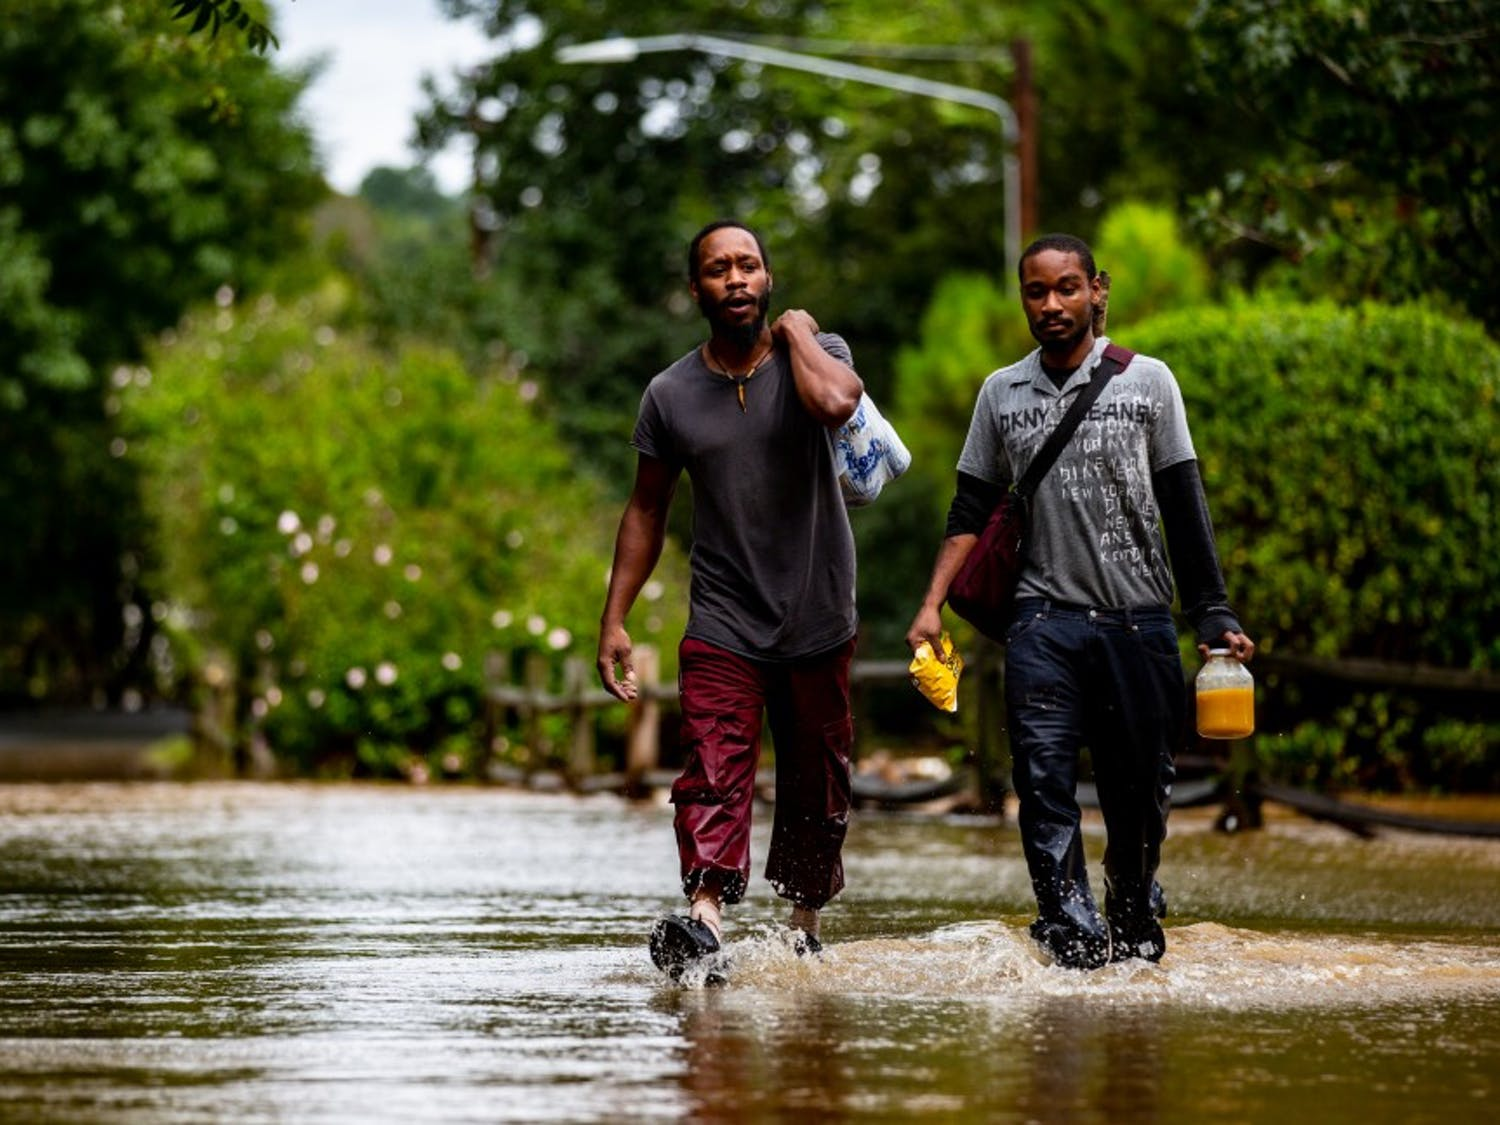 "Kyrie and Michael Benton carry food and some of their waterlogged belongings through the grounds of Camelot Village apartments in Chapel Hill the morning of Sept. 17, 2018. Chapel Hill had been seemingly spared the worst of Hurricane Florence but Sunday night into Monday morning saw a downpour of heavy rain that caused flash flooding around the Triangle. Camelot Village has seen flooding in the past but never to this degree, according to Kyrie and other residents of many years. ""I lost everything in this flood,"" Kyrie said. Just as quickly as it flooded, the water began to recede late the same morning and early in the afternoon."